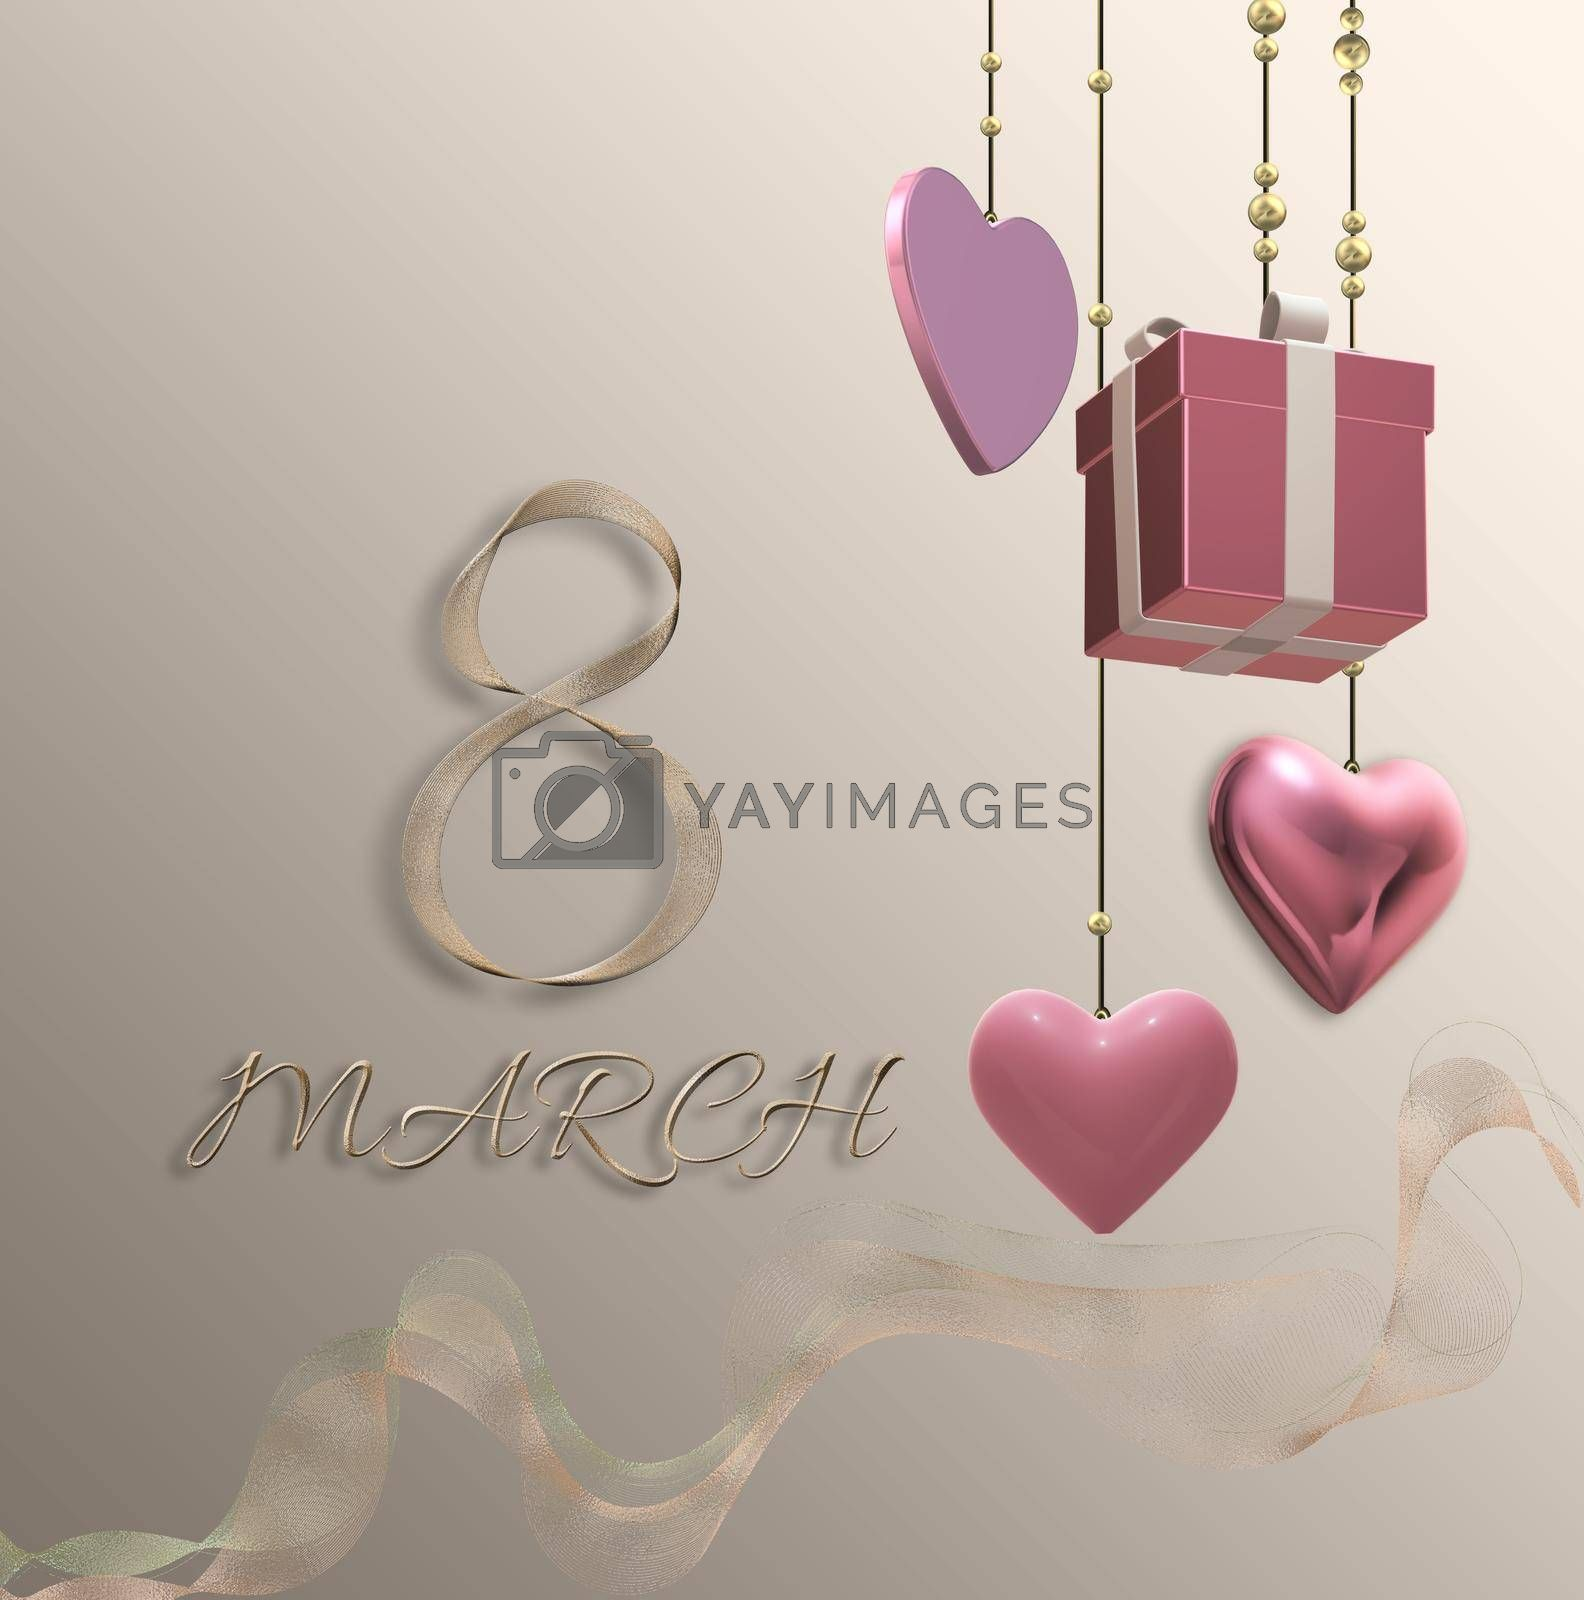 8th of March Women's Day elegant beautiful design template. Text 8 March made of golden shiny ribbon. Hanging gift box, 3D hearts on pastel gold background. 3D illustration